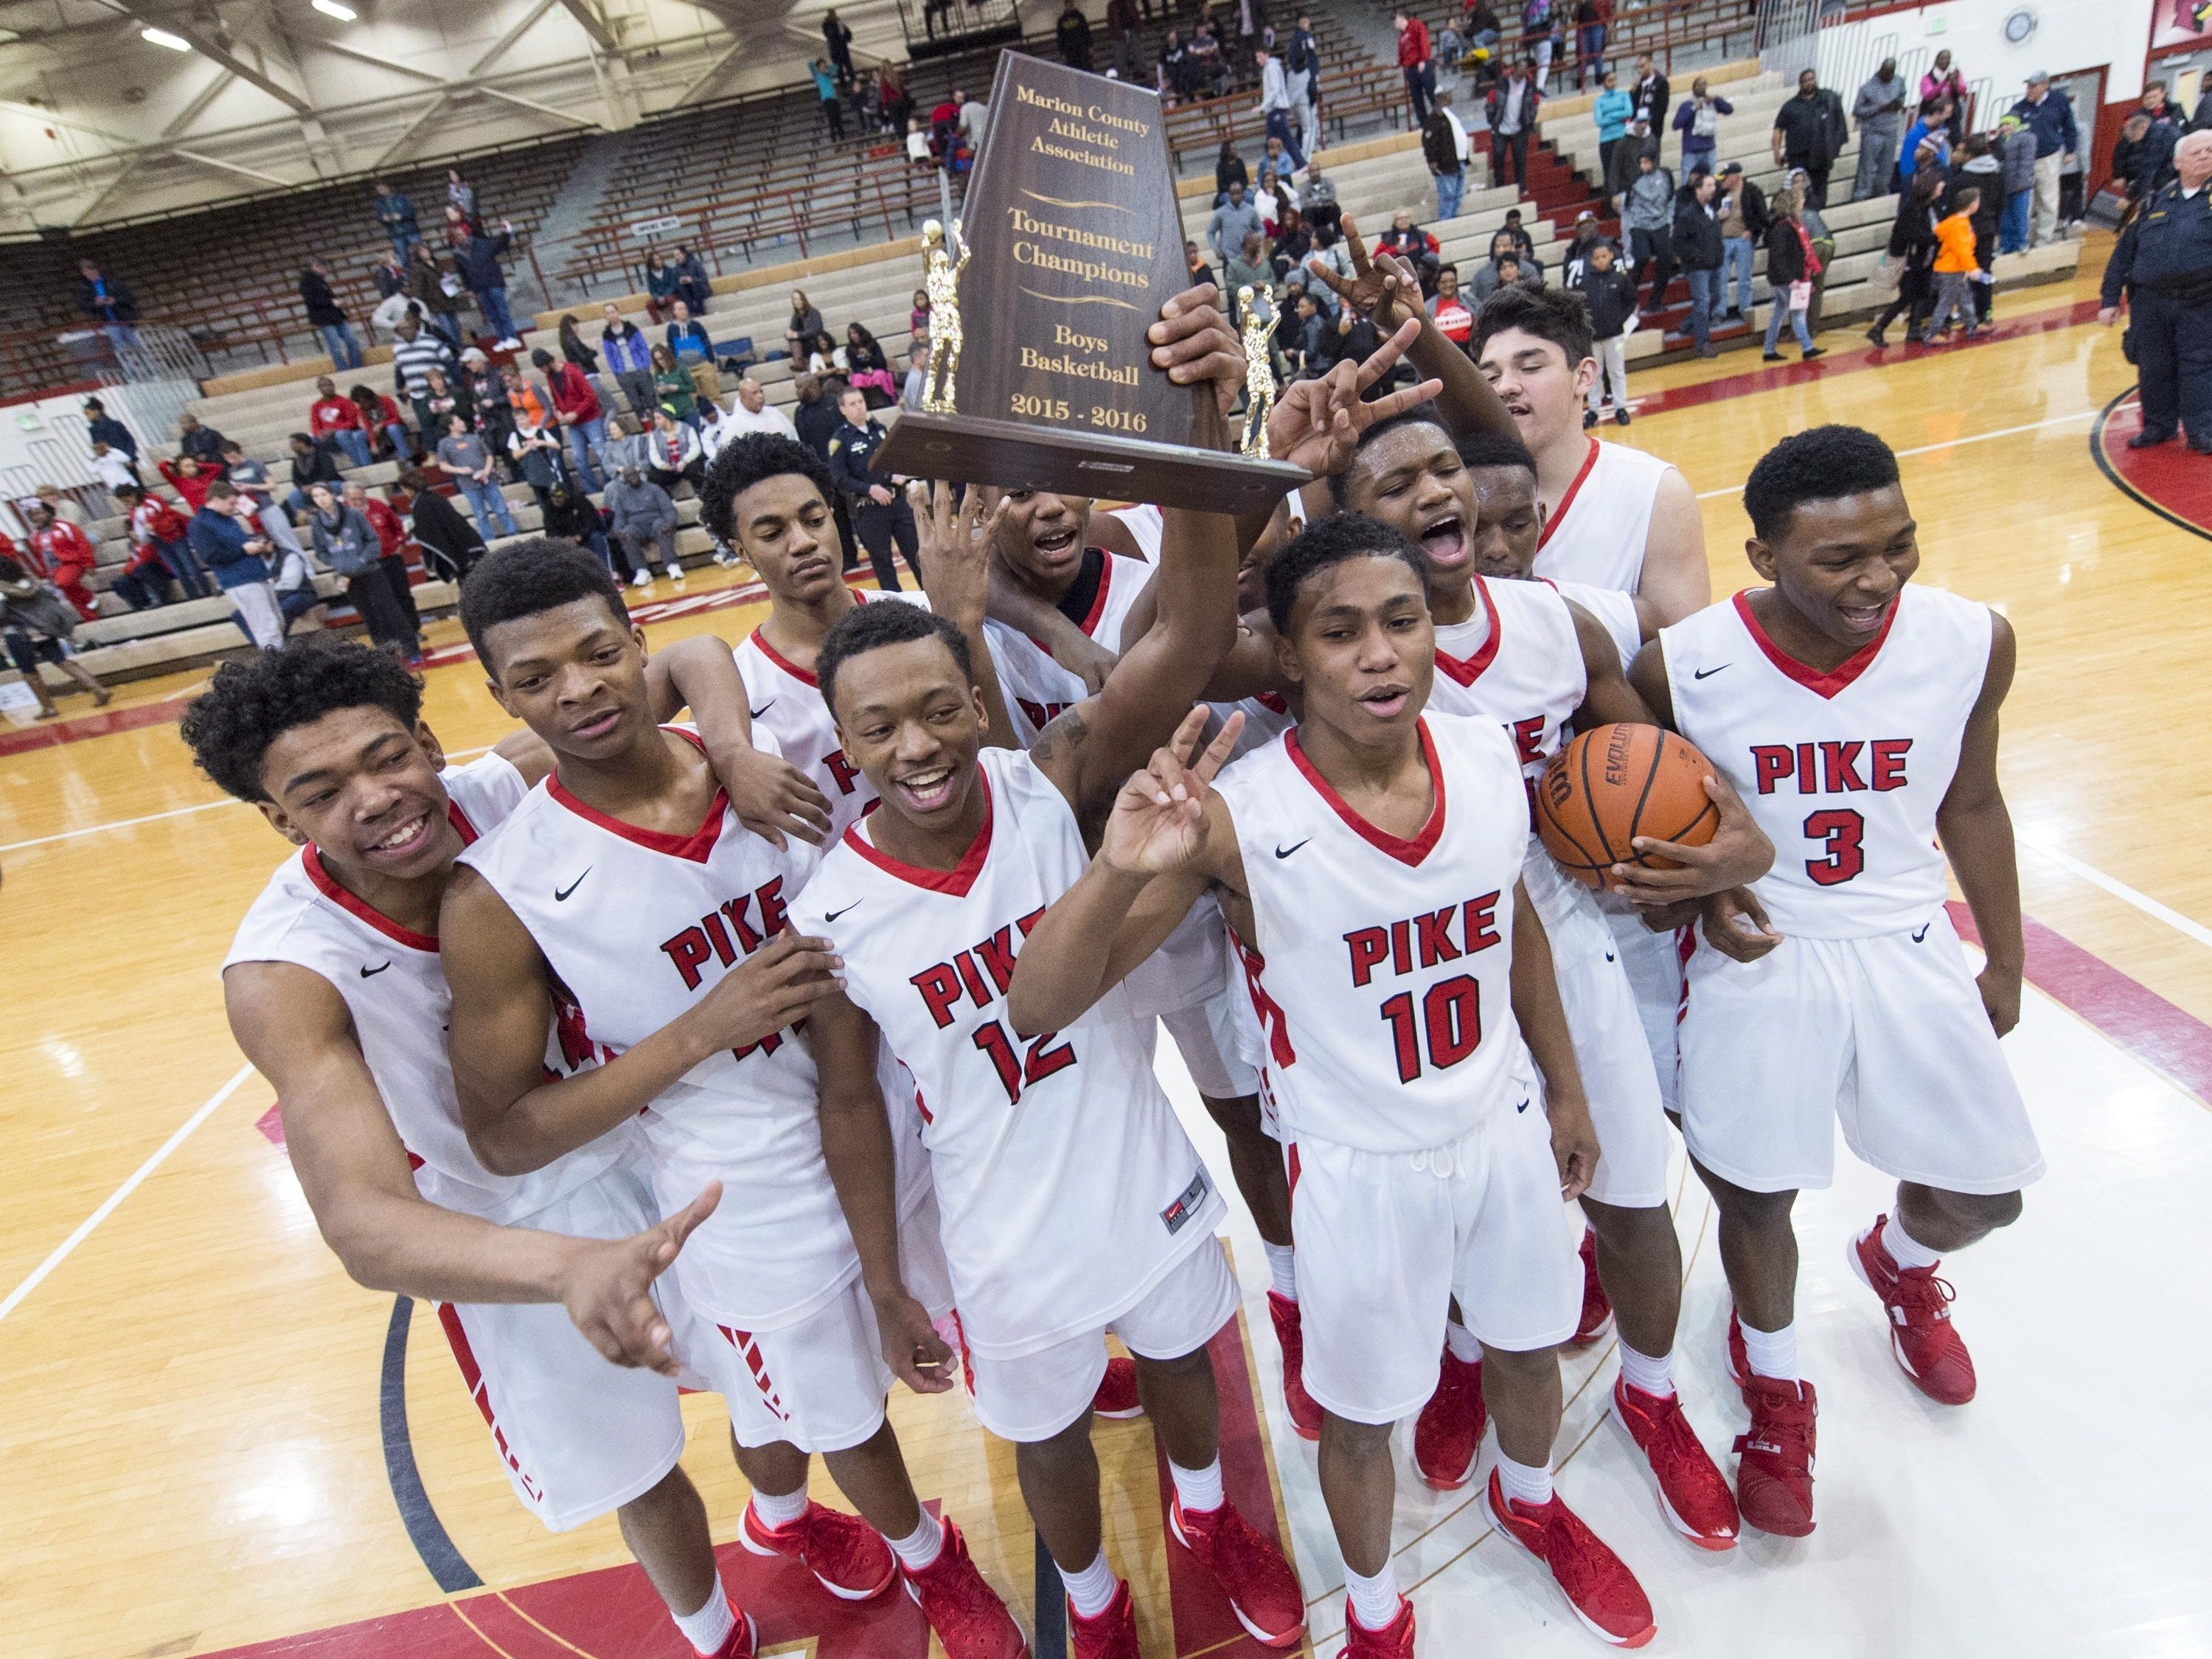 Pike wins Marion County tournament on buzzer-beater   USA TODAY High School Sports